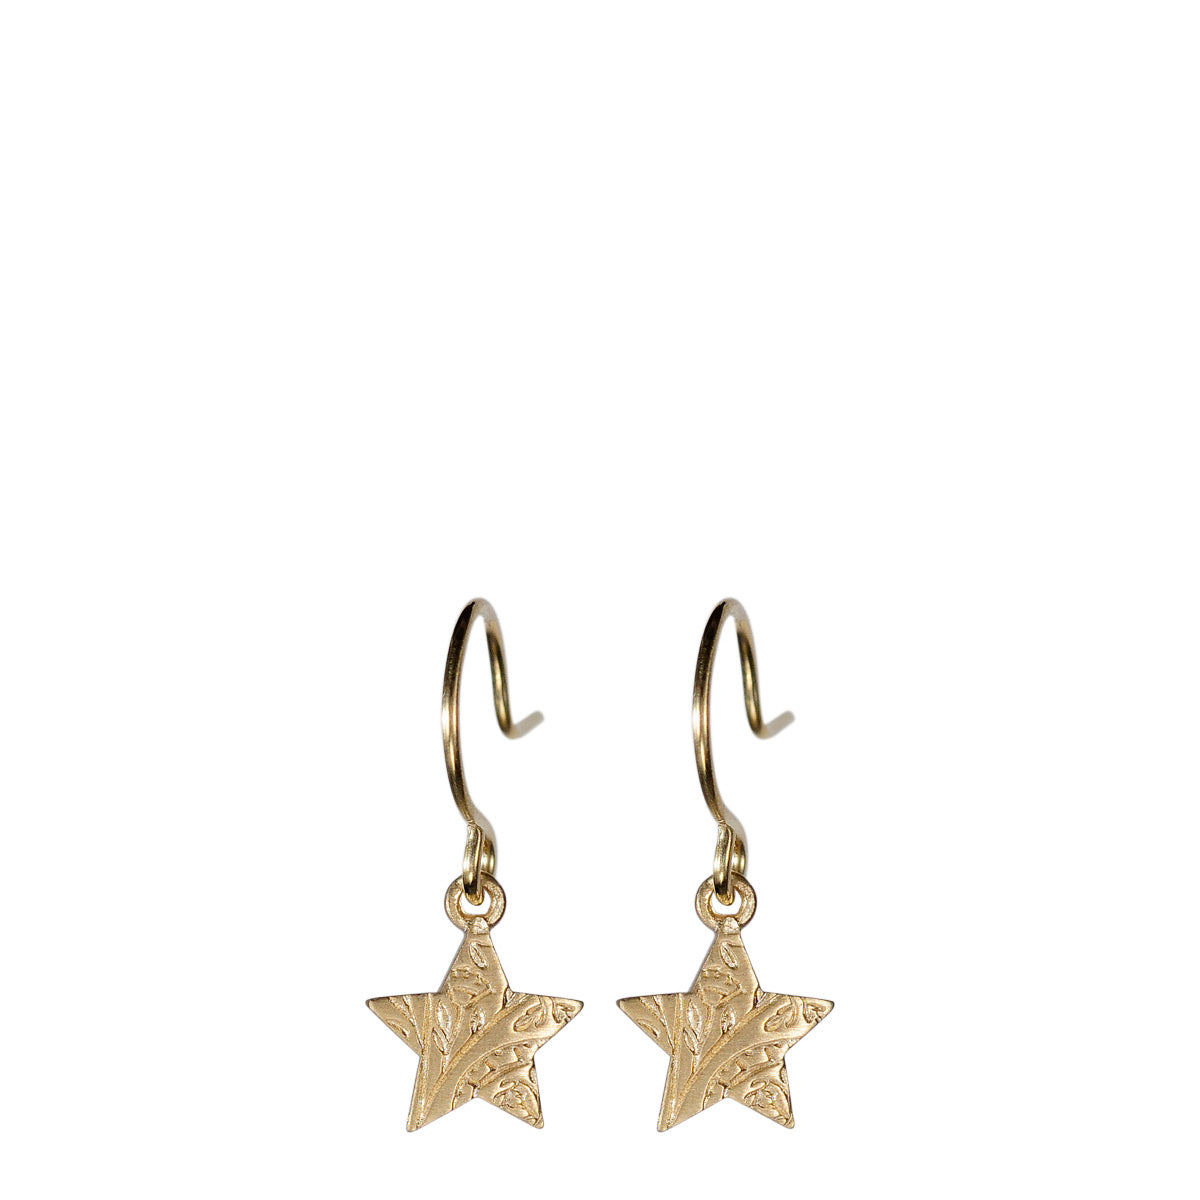 10K Gold Small Paisley Star Earrings